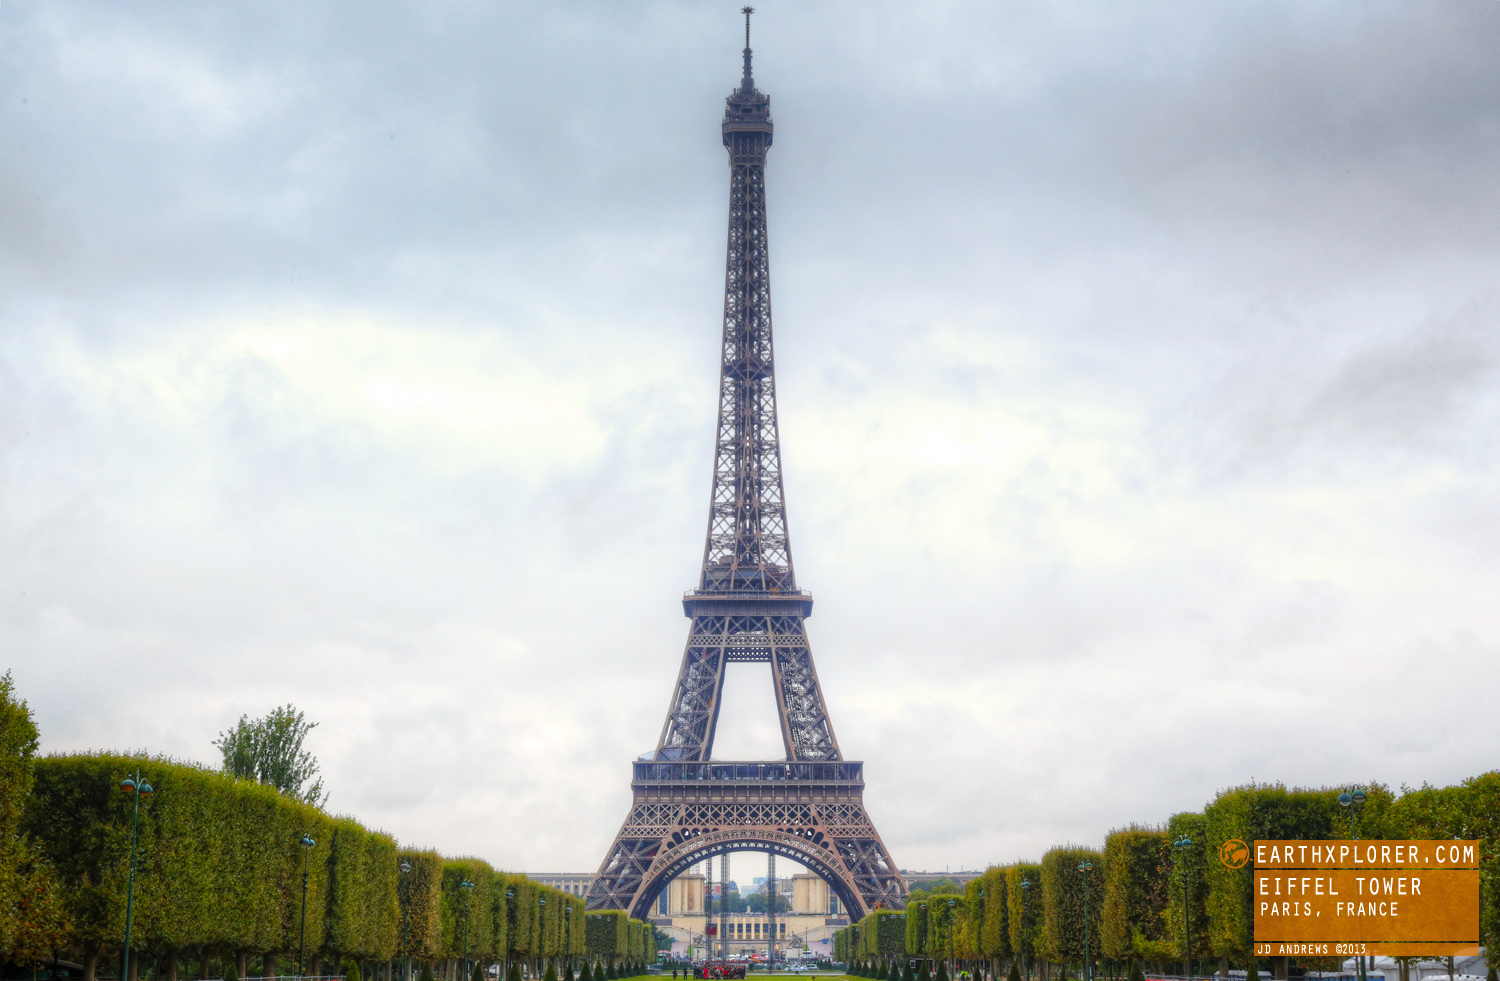 The Eiffel Tower, named after the engineer Gustave Eiffel, whose company designed & built the tower.